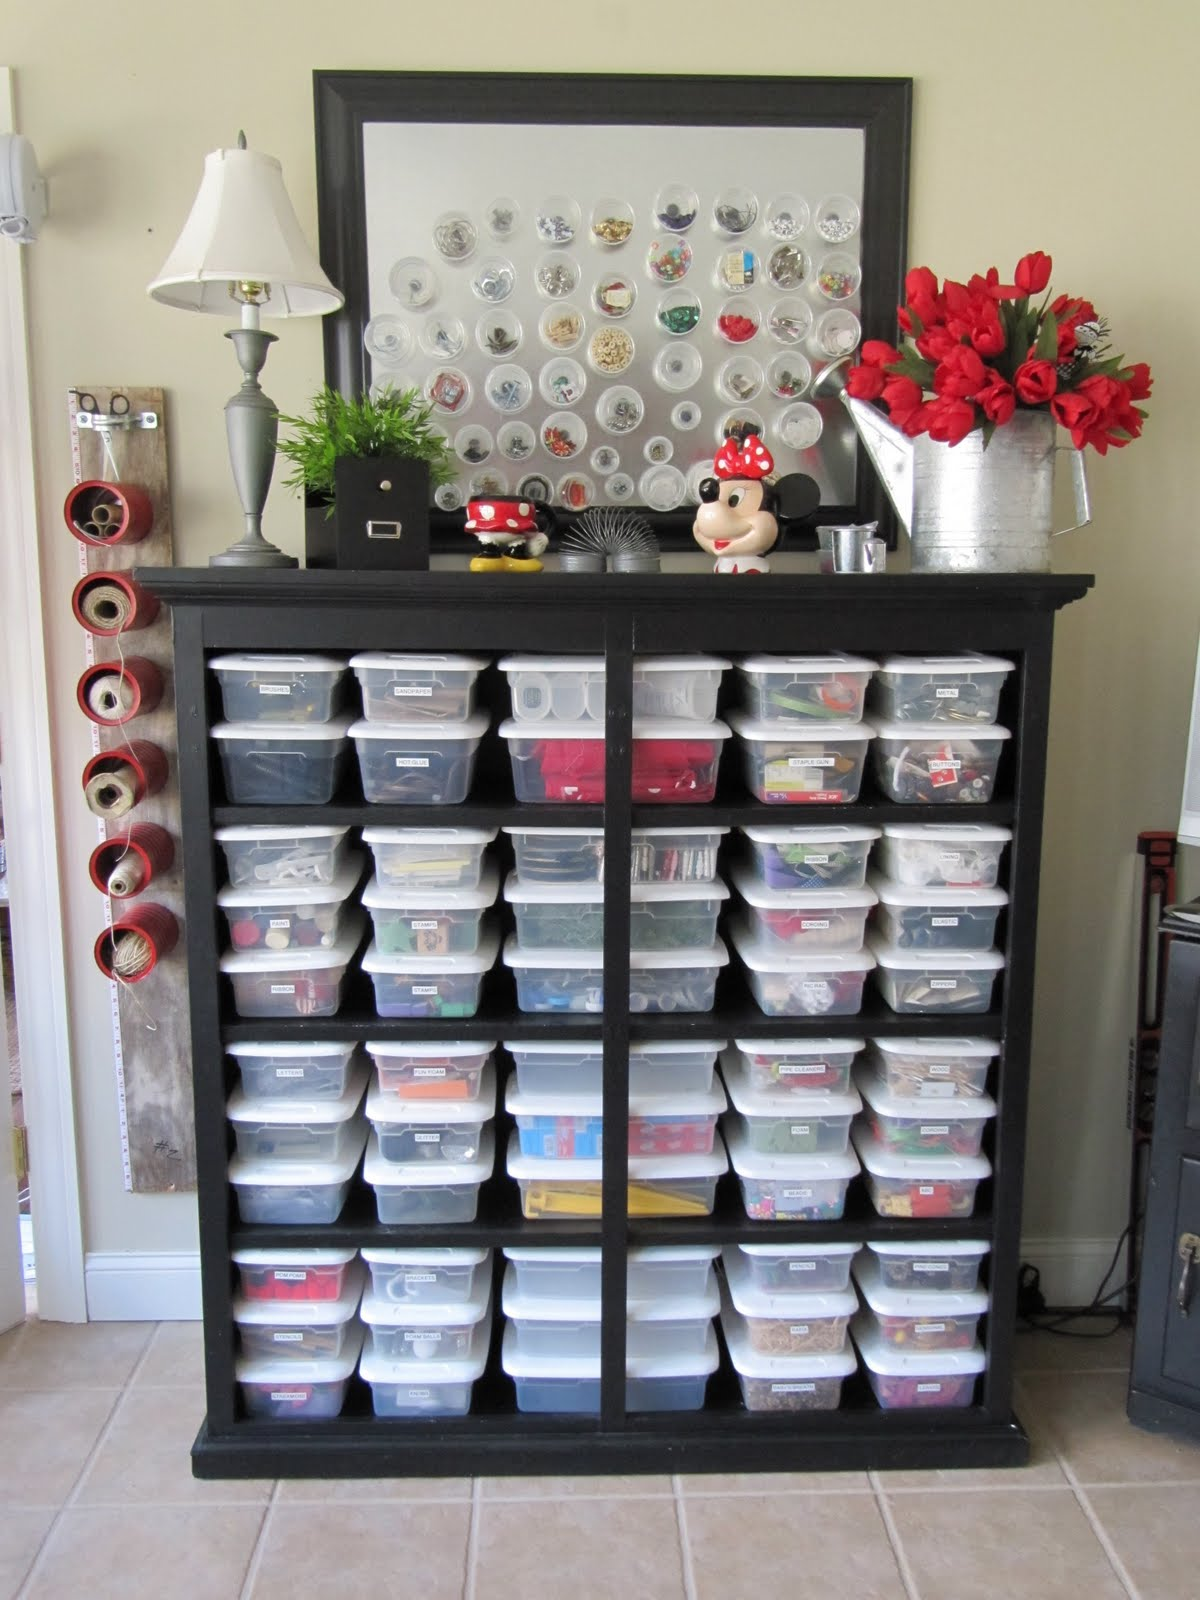 Lovely Green Lifestyle: DIY Home Ideas Part II: Let's Get Organized!